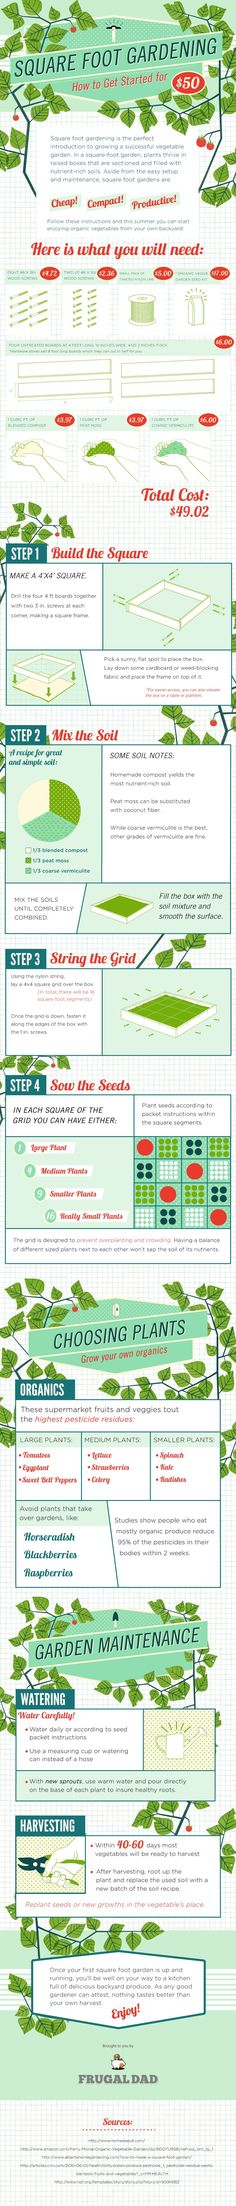 great tutorial on square foot gardening. Originally posted at frugaldad.com